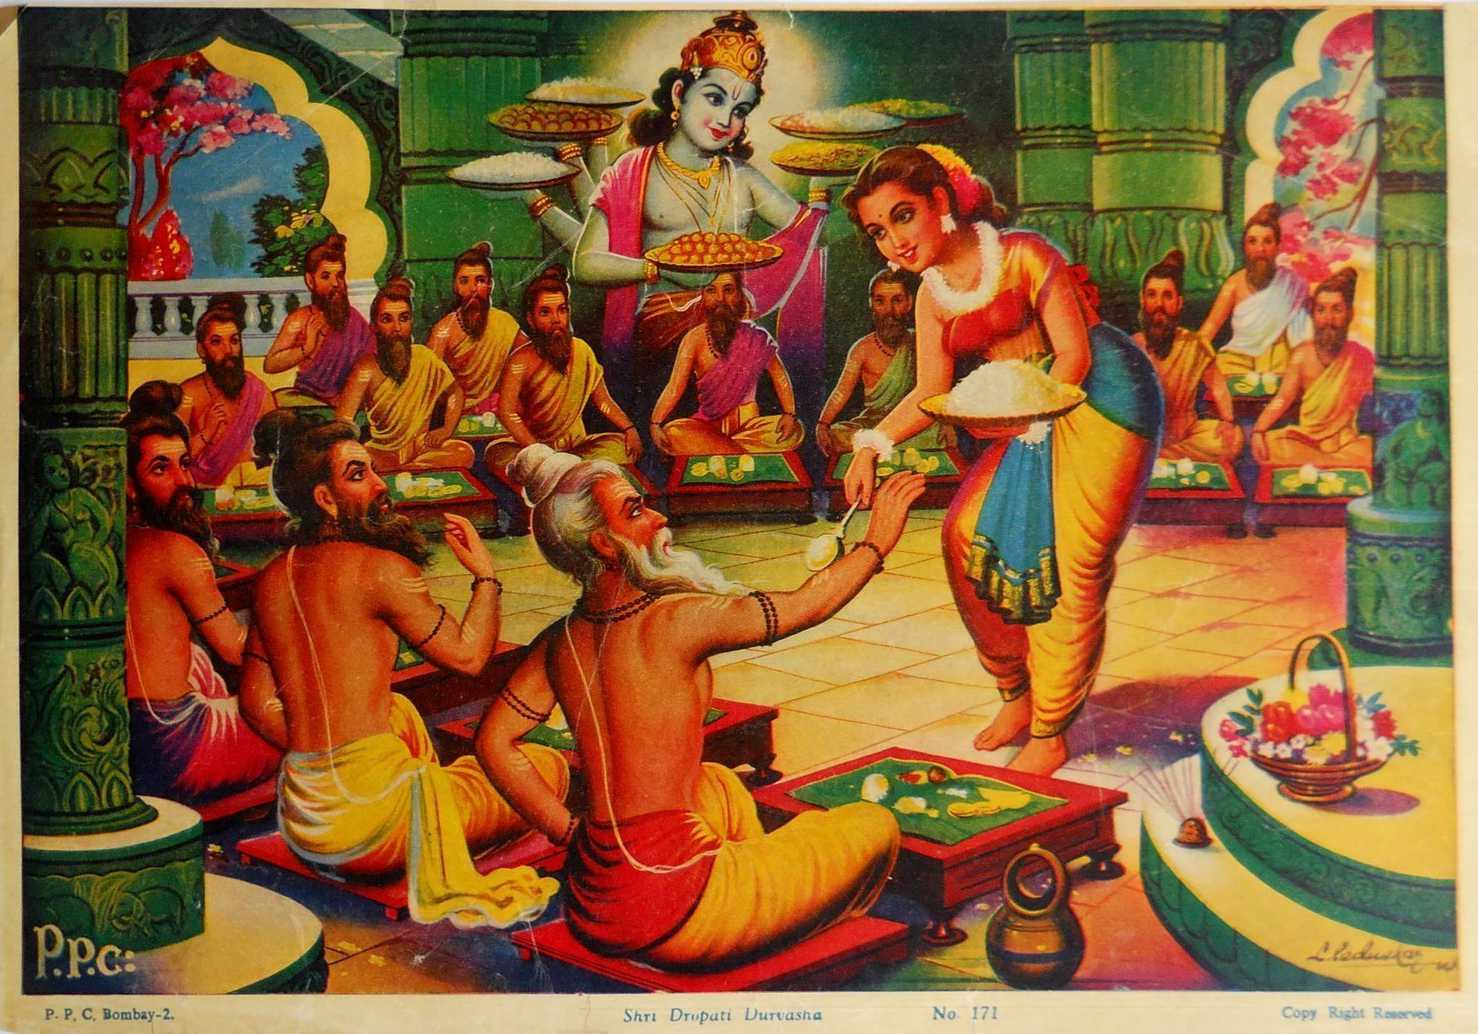 food rituals in hinduism The hindu religion is one of the world's oldest religions, dating back approximately four thousand years the highest concentration of hindus are found in india however, there are communities of hindus in countries all over the world.